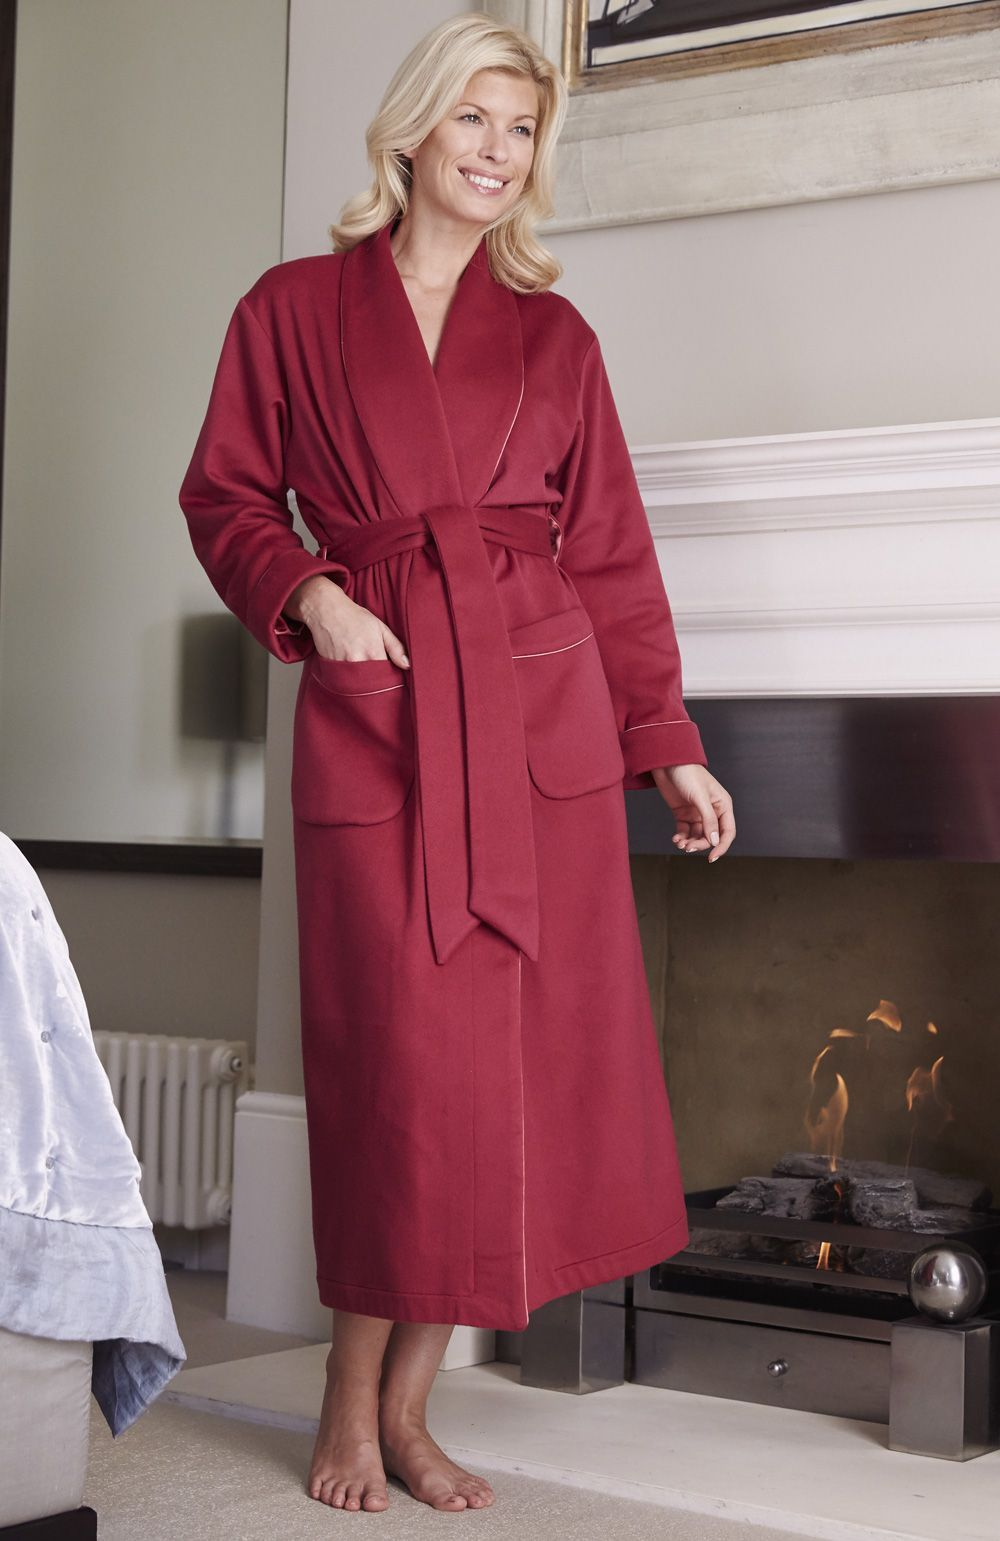 b071d36b32 Luxury Ladies Cashmere Robe. Made from the most luxurious Italian cashmere